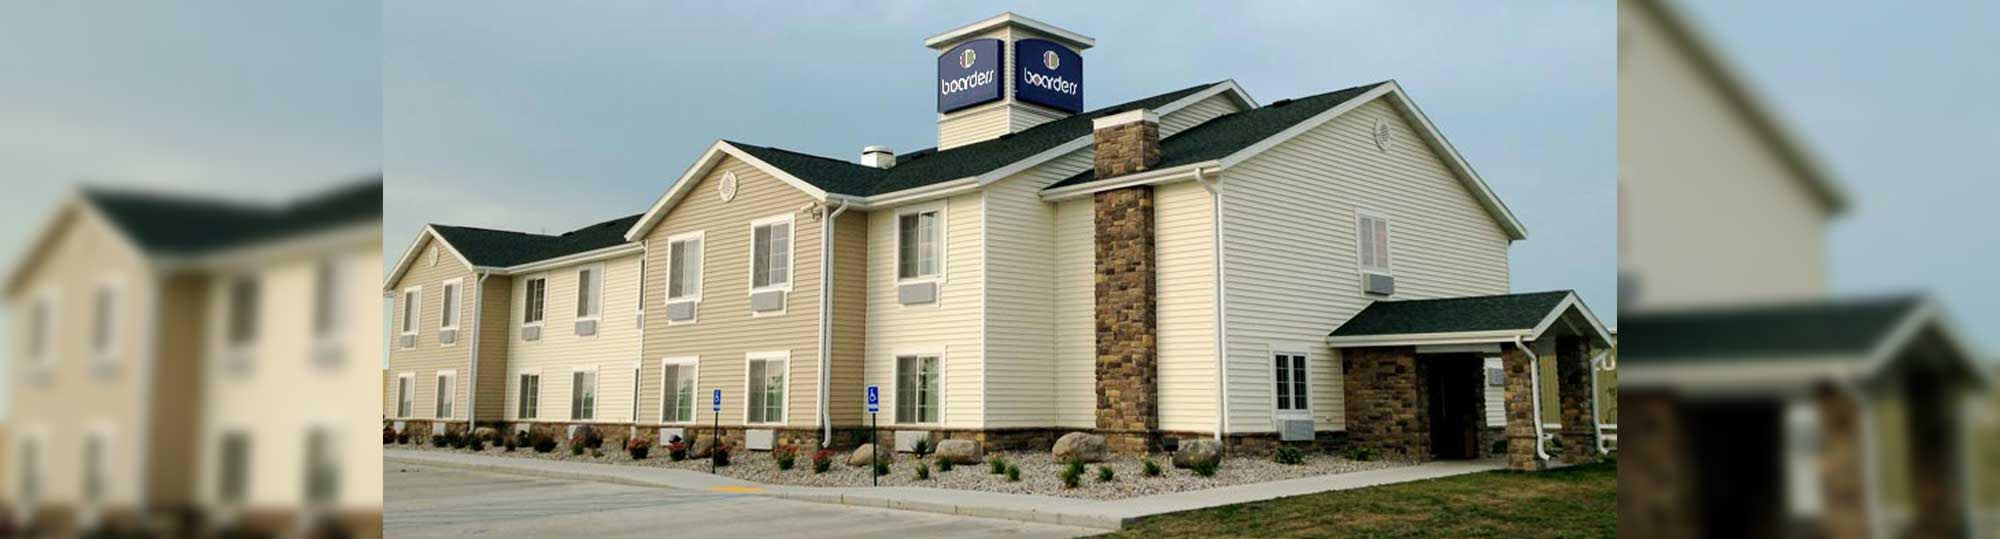 Boarders Inn and Suites Evansville